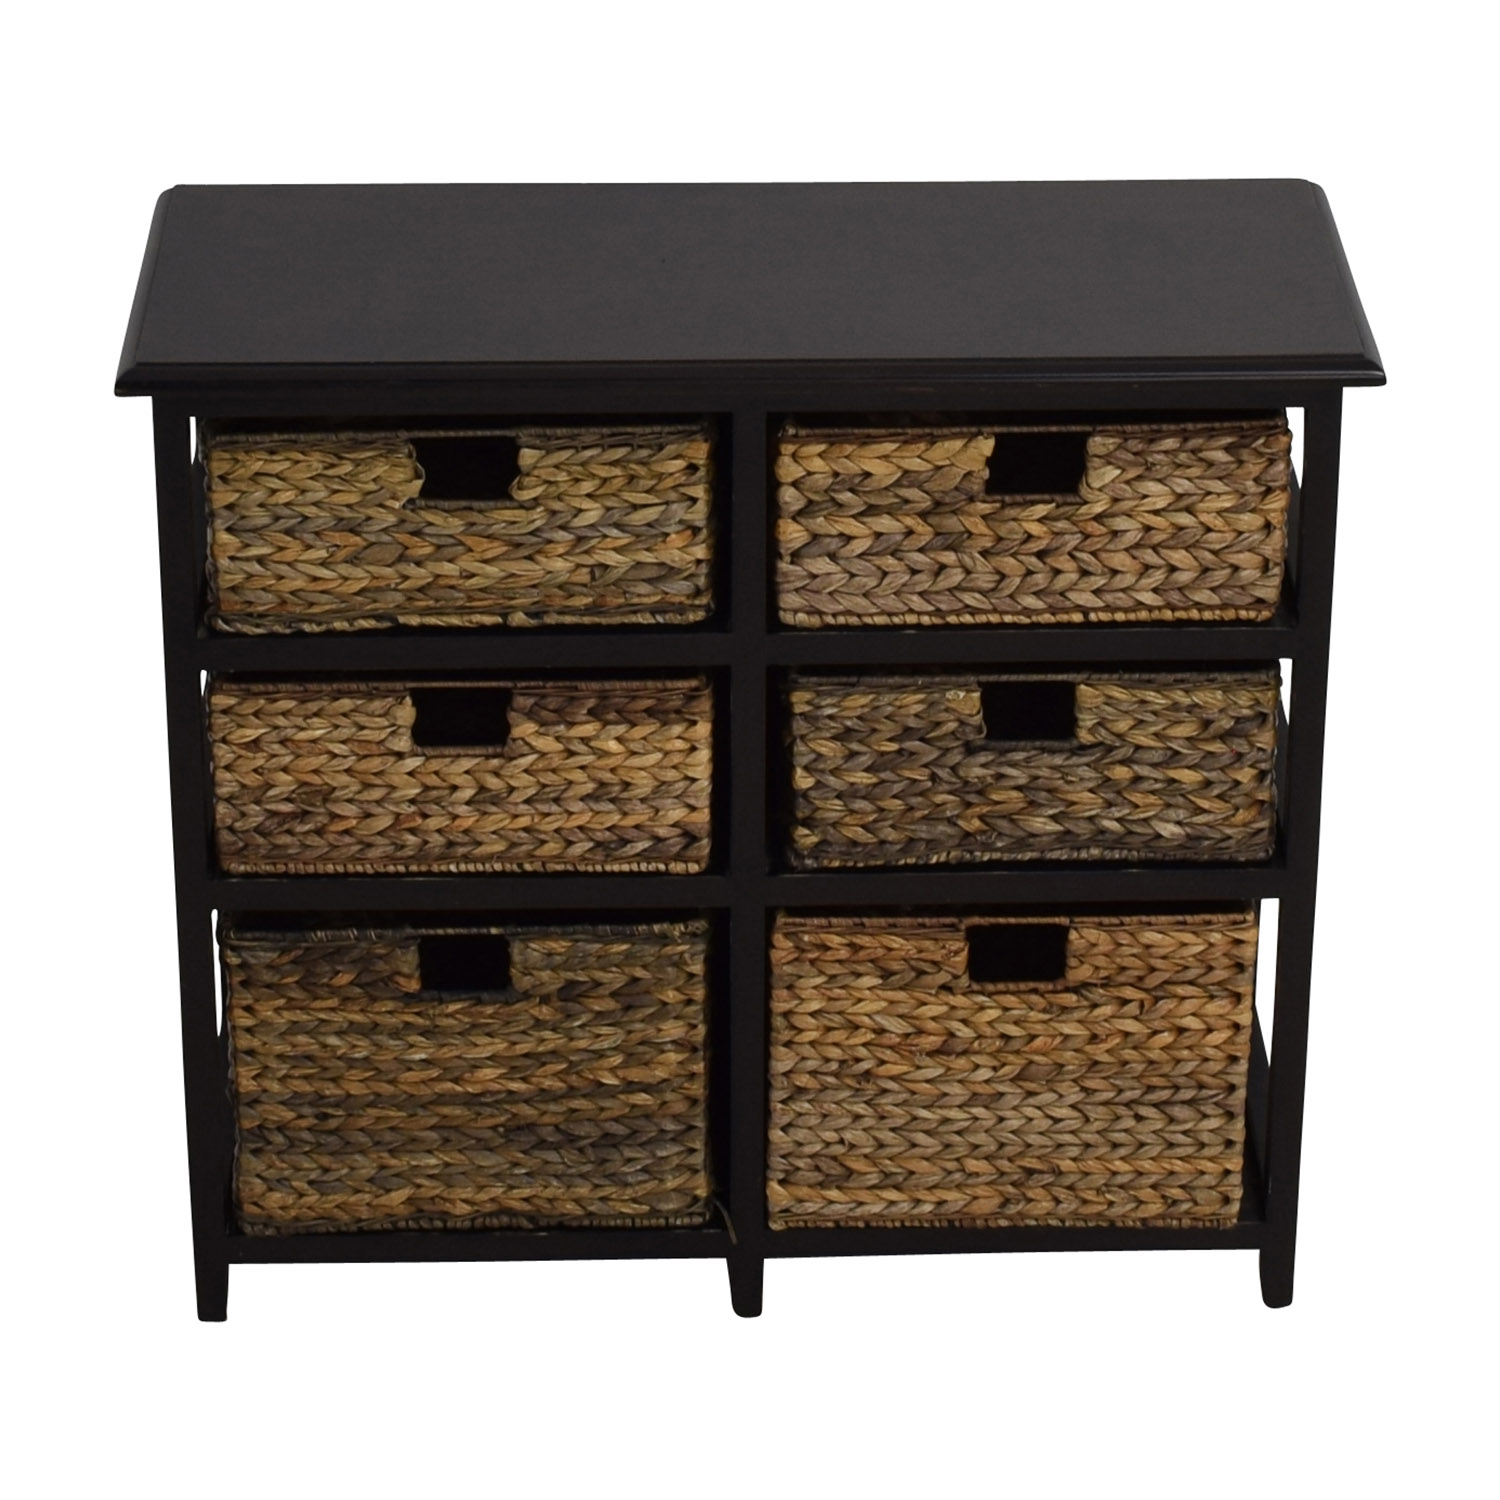 ... Pier 1 Imports Pier 1 Imports Black Wicker Storage Drawers Coupon ...